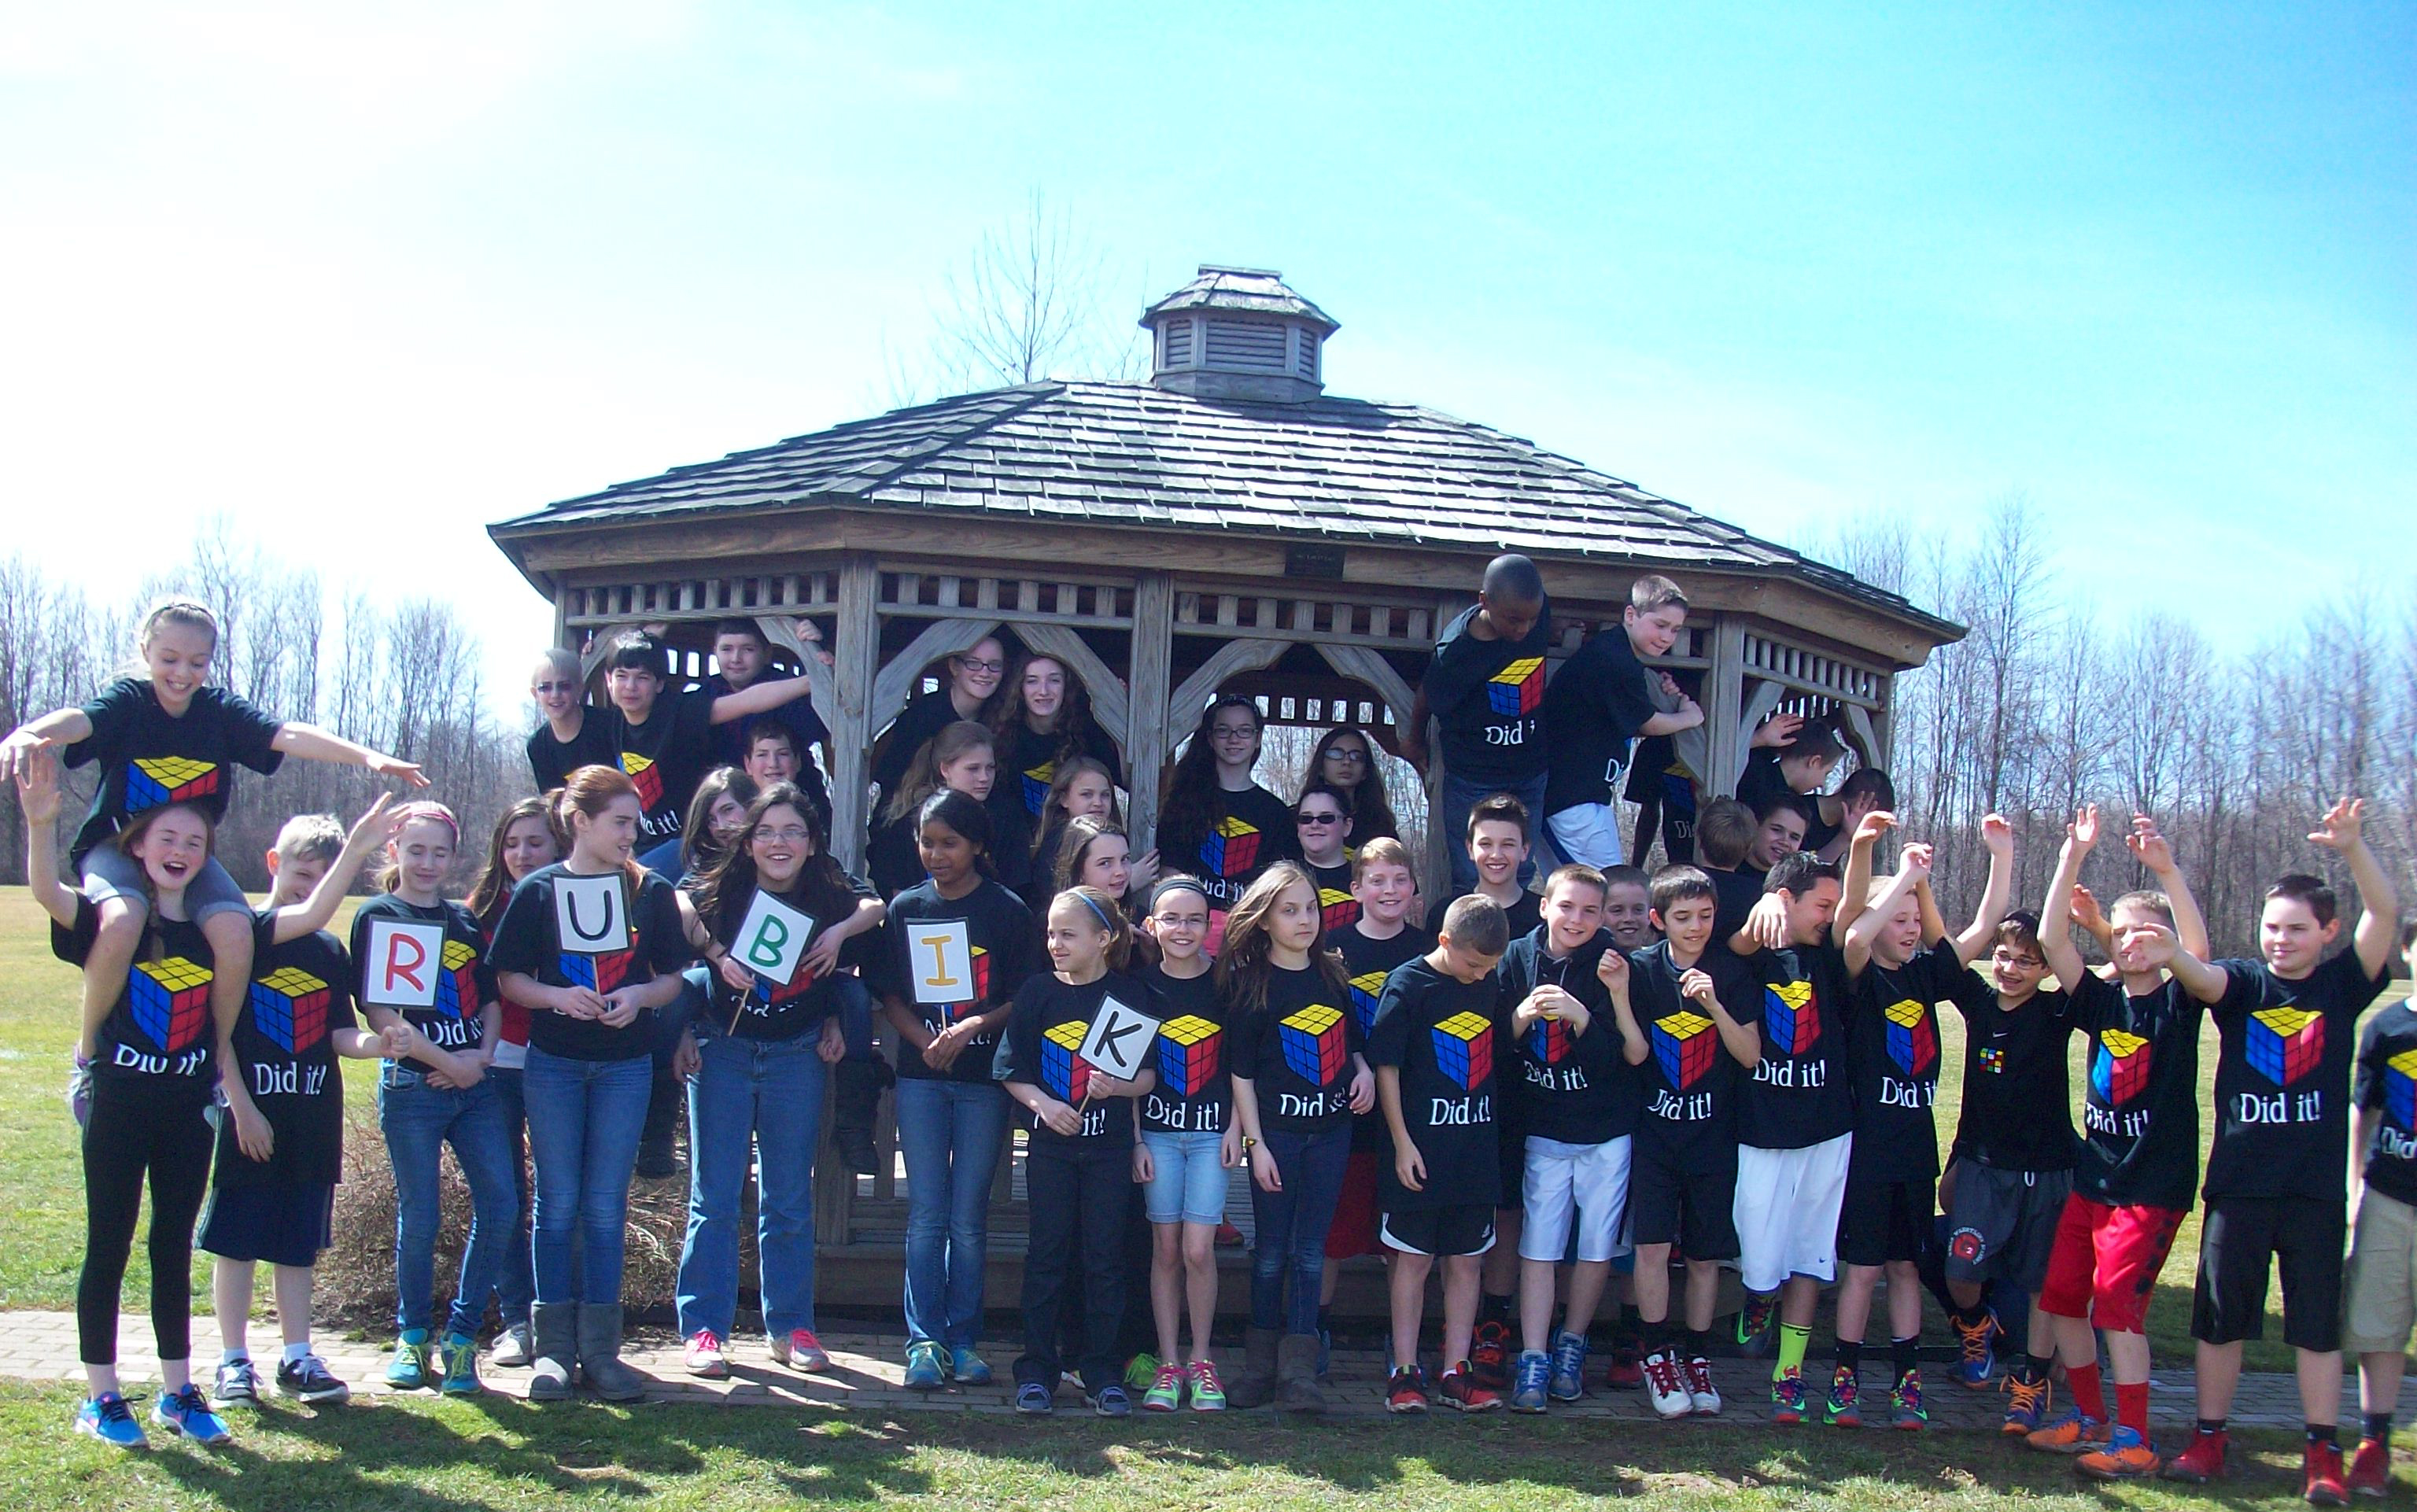 Large group of elementary school aged children wearing black t-shirts with the Rubik's cube in the center.